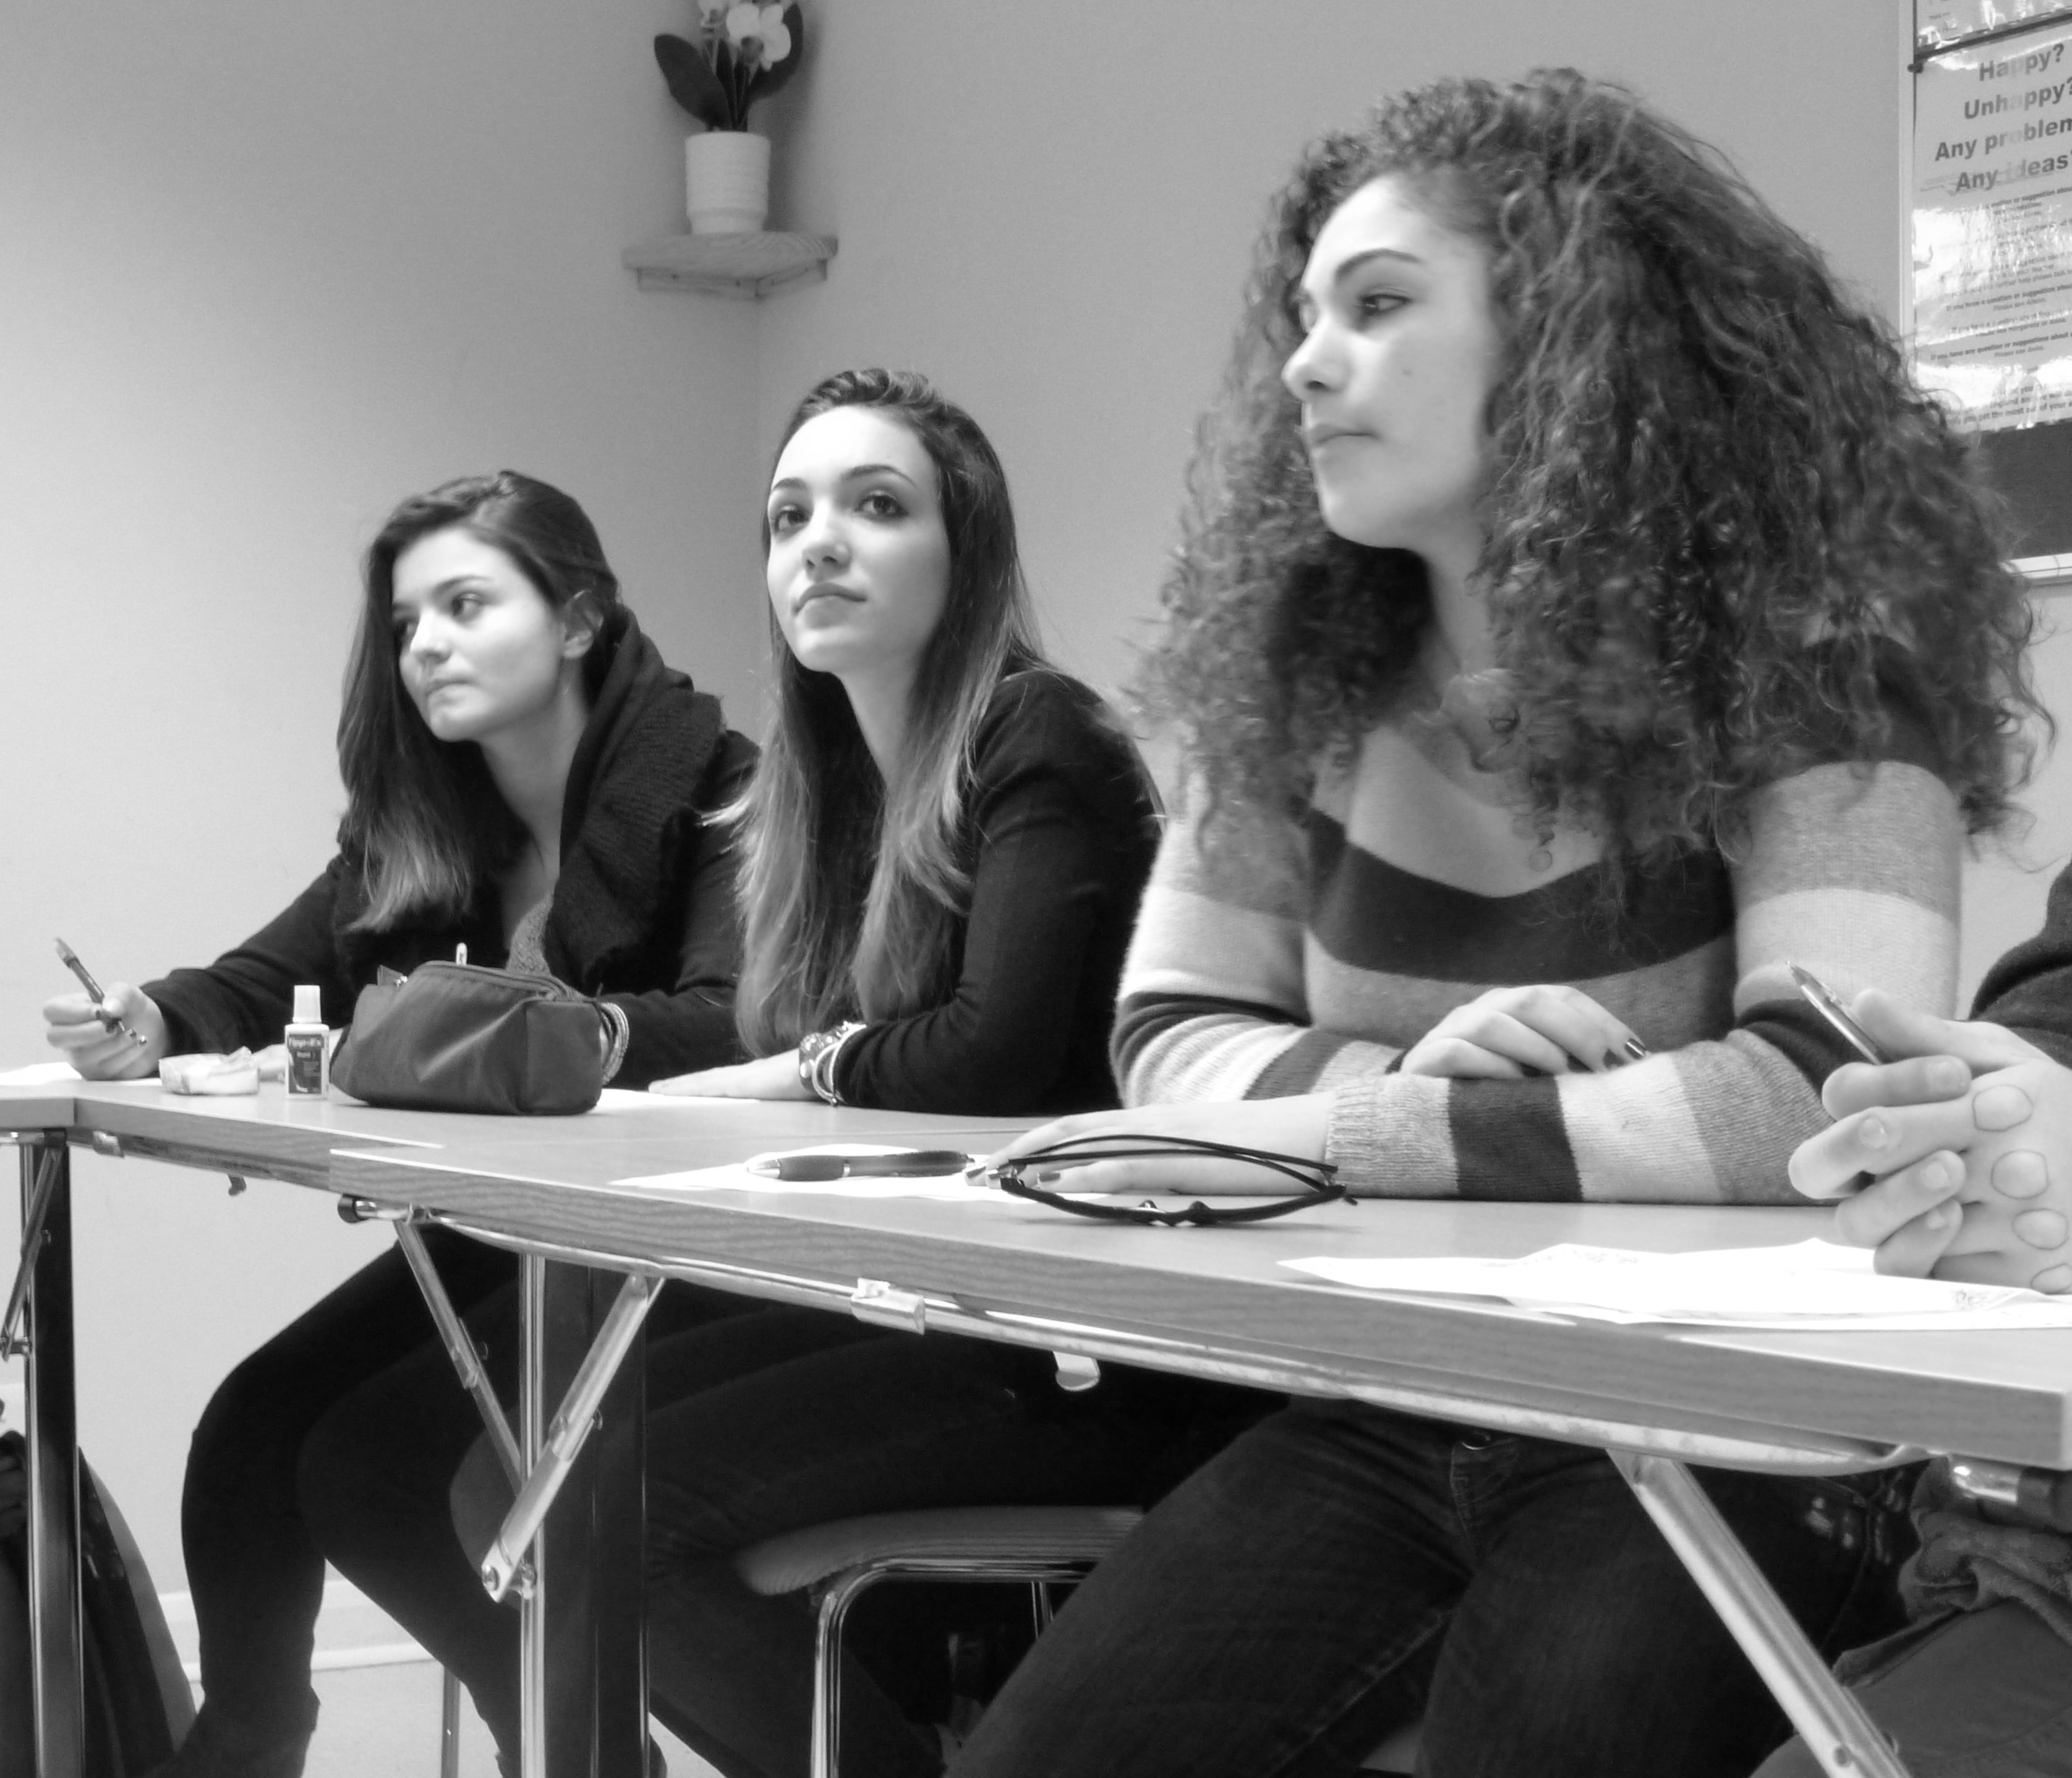 Black and white photo of 3 female students in class